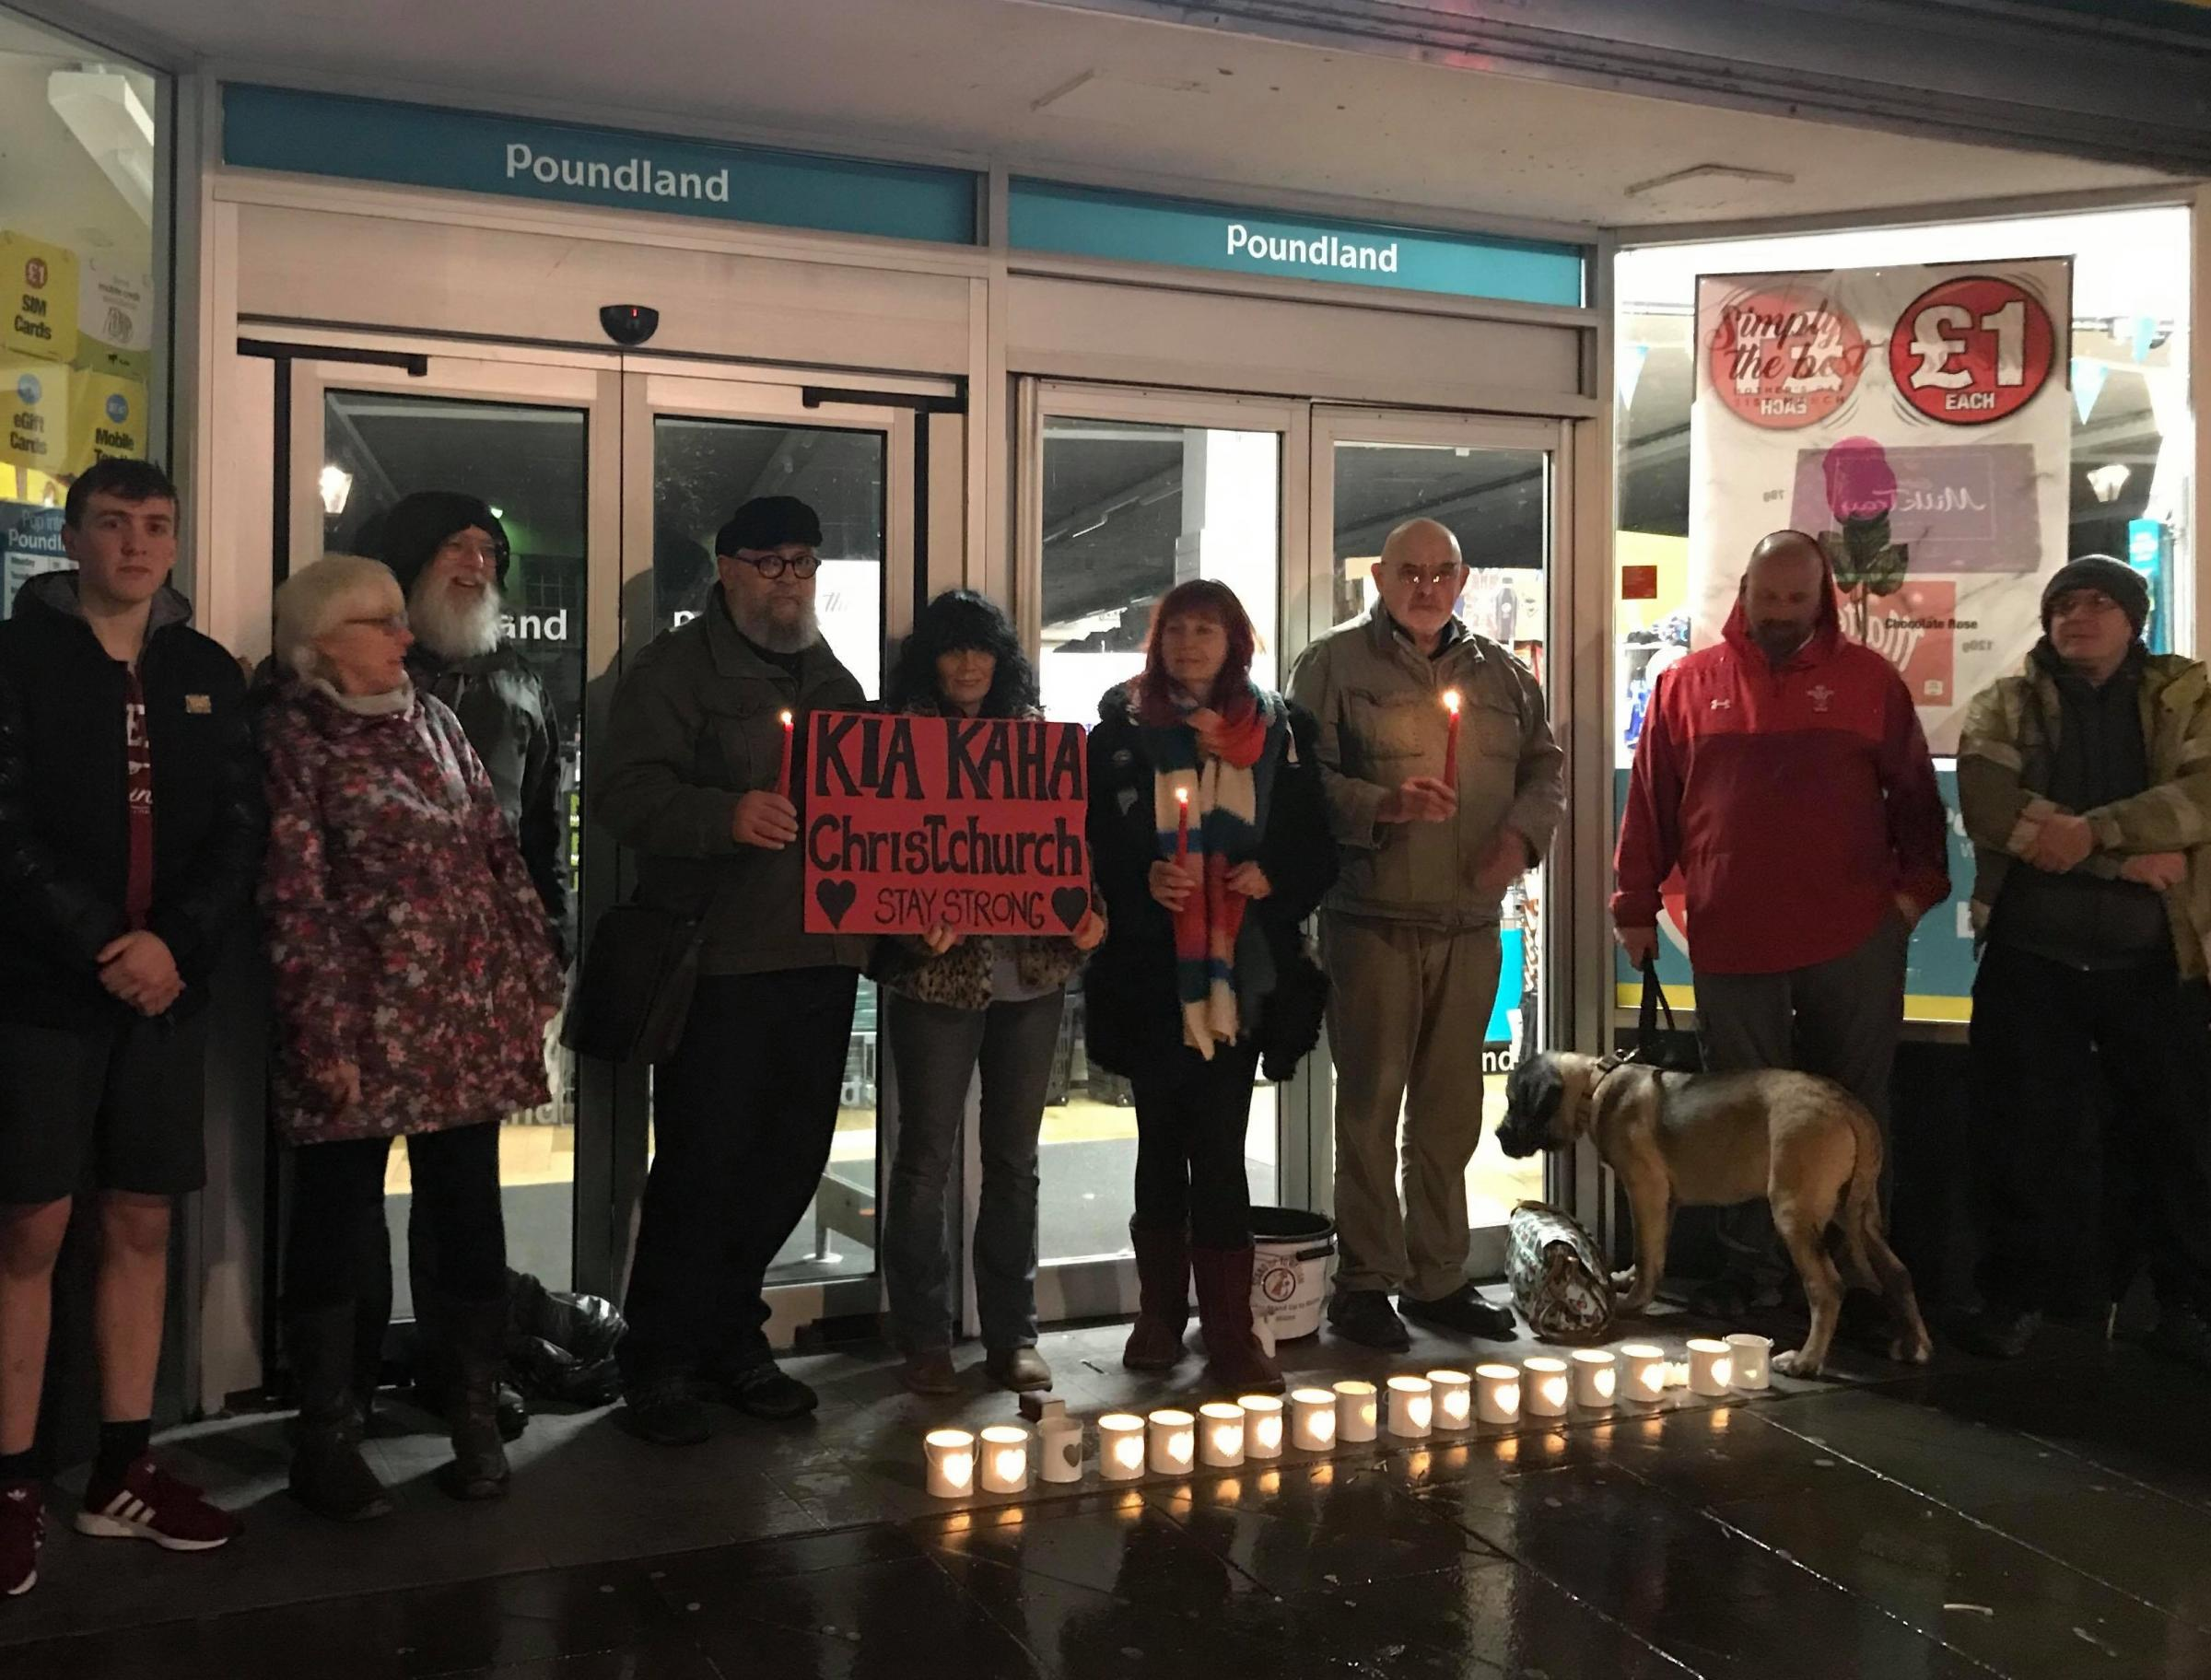 A vigil was held in Haverfordwest after the Christchurch attacks.